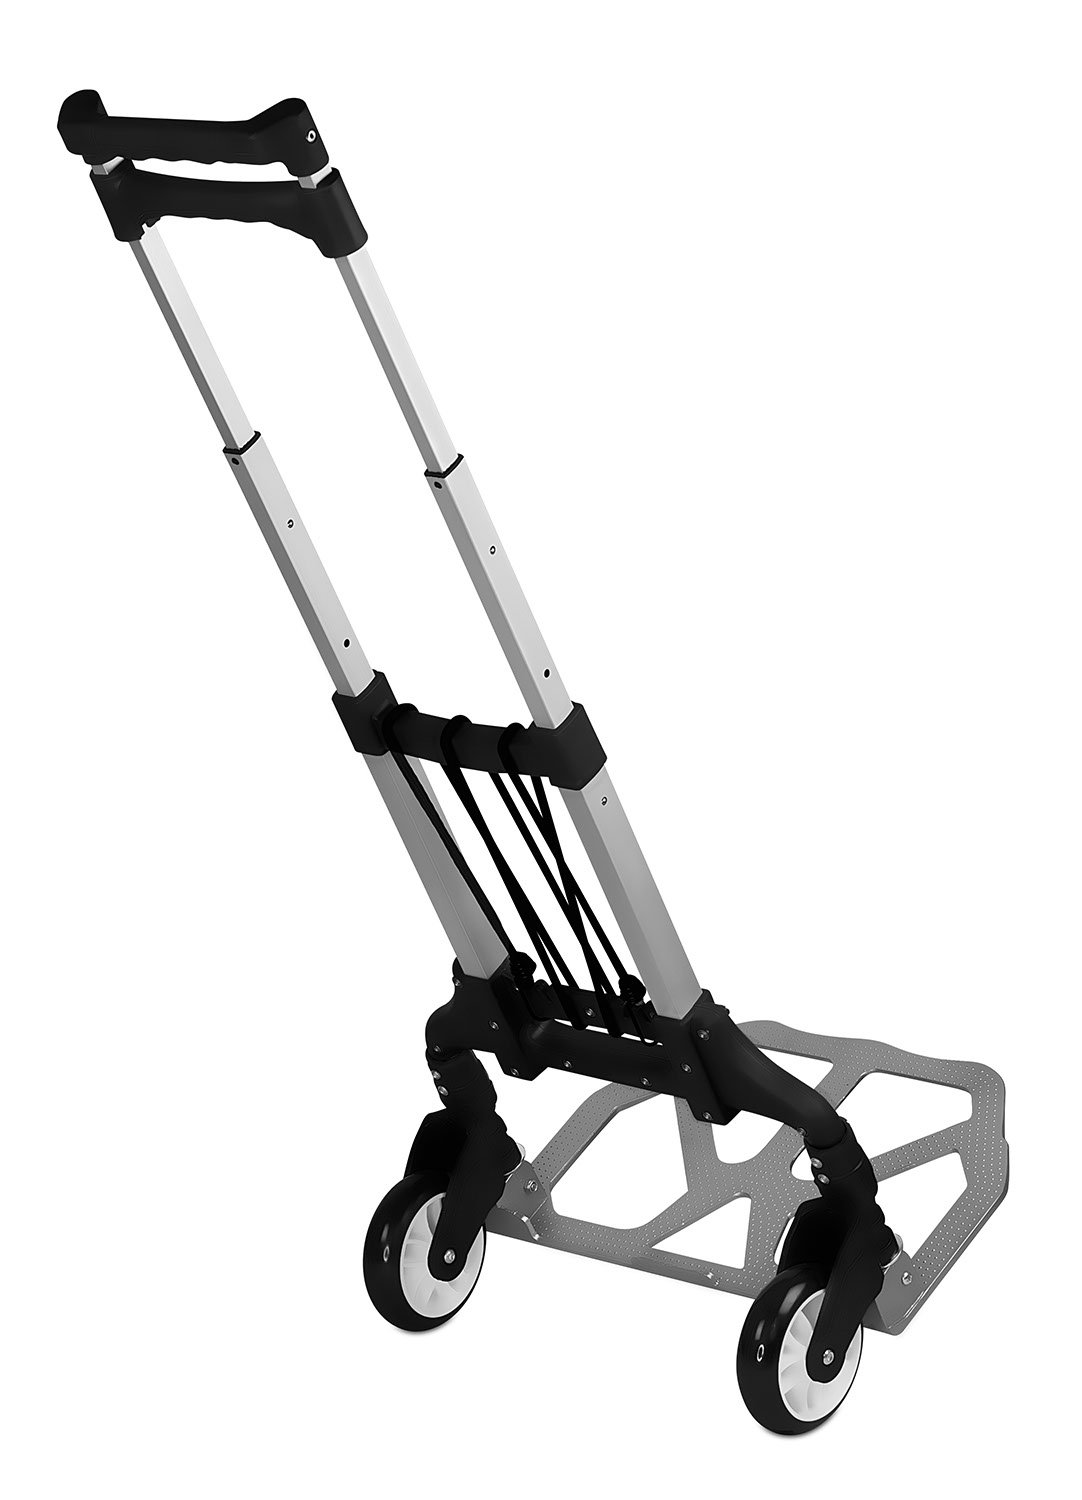 Mount It Folding Hand Truck and Dolly 165 lb Capacity Heavy Duty Luggage Trolley Cart with Telescoping Handle and Rubber Wheels